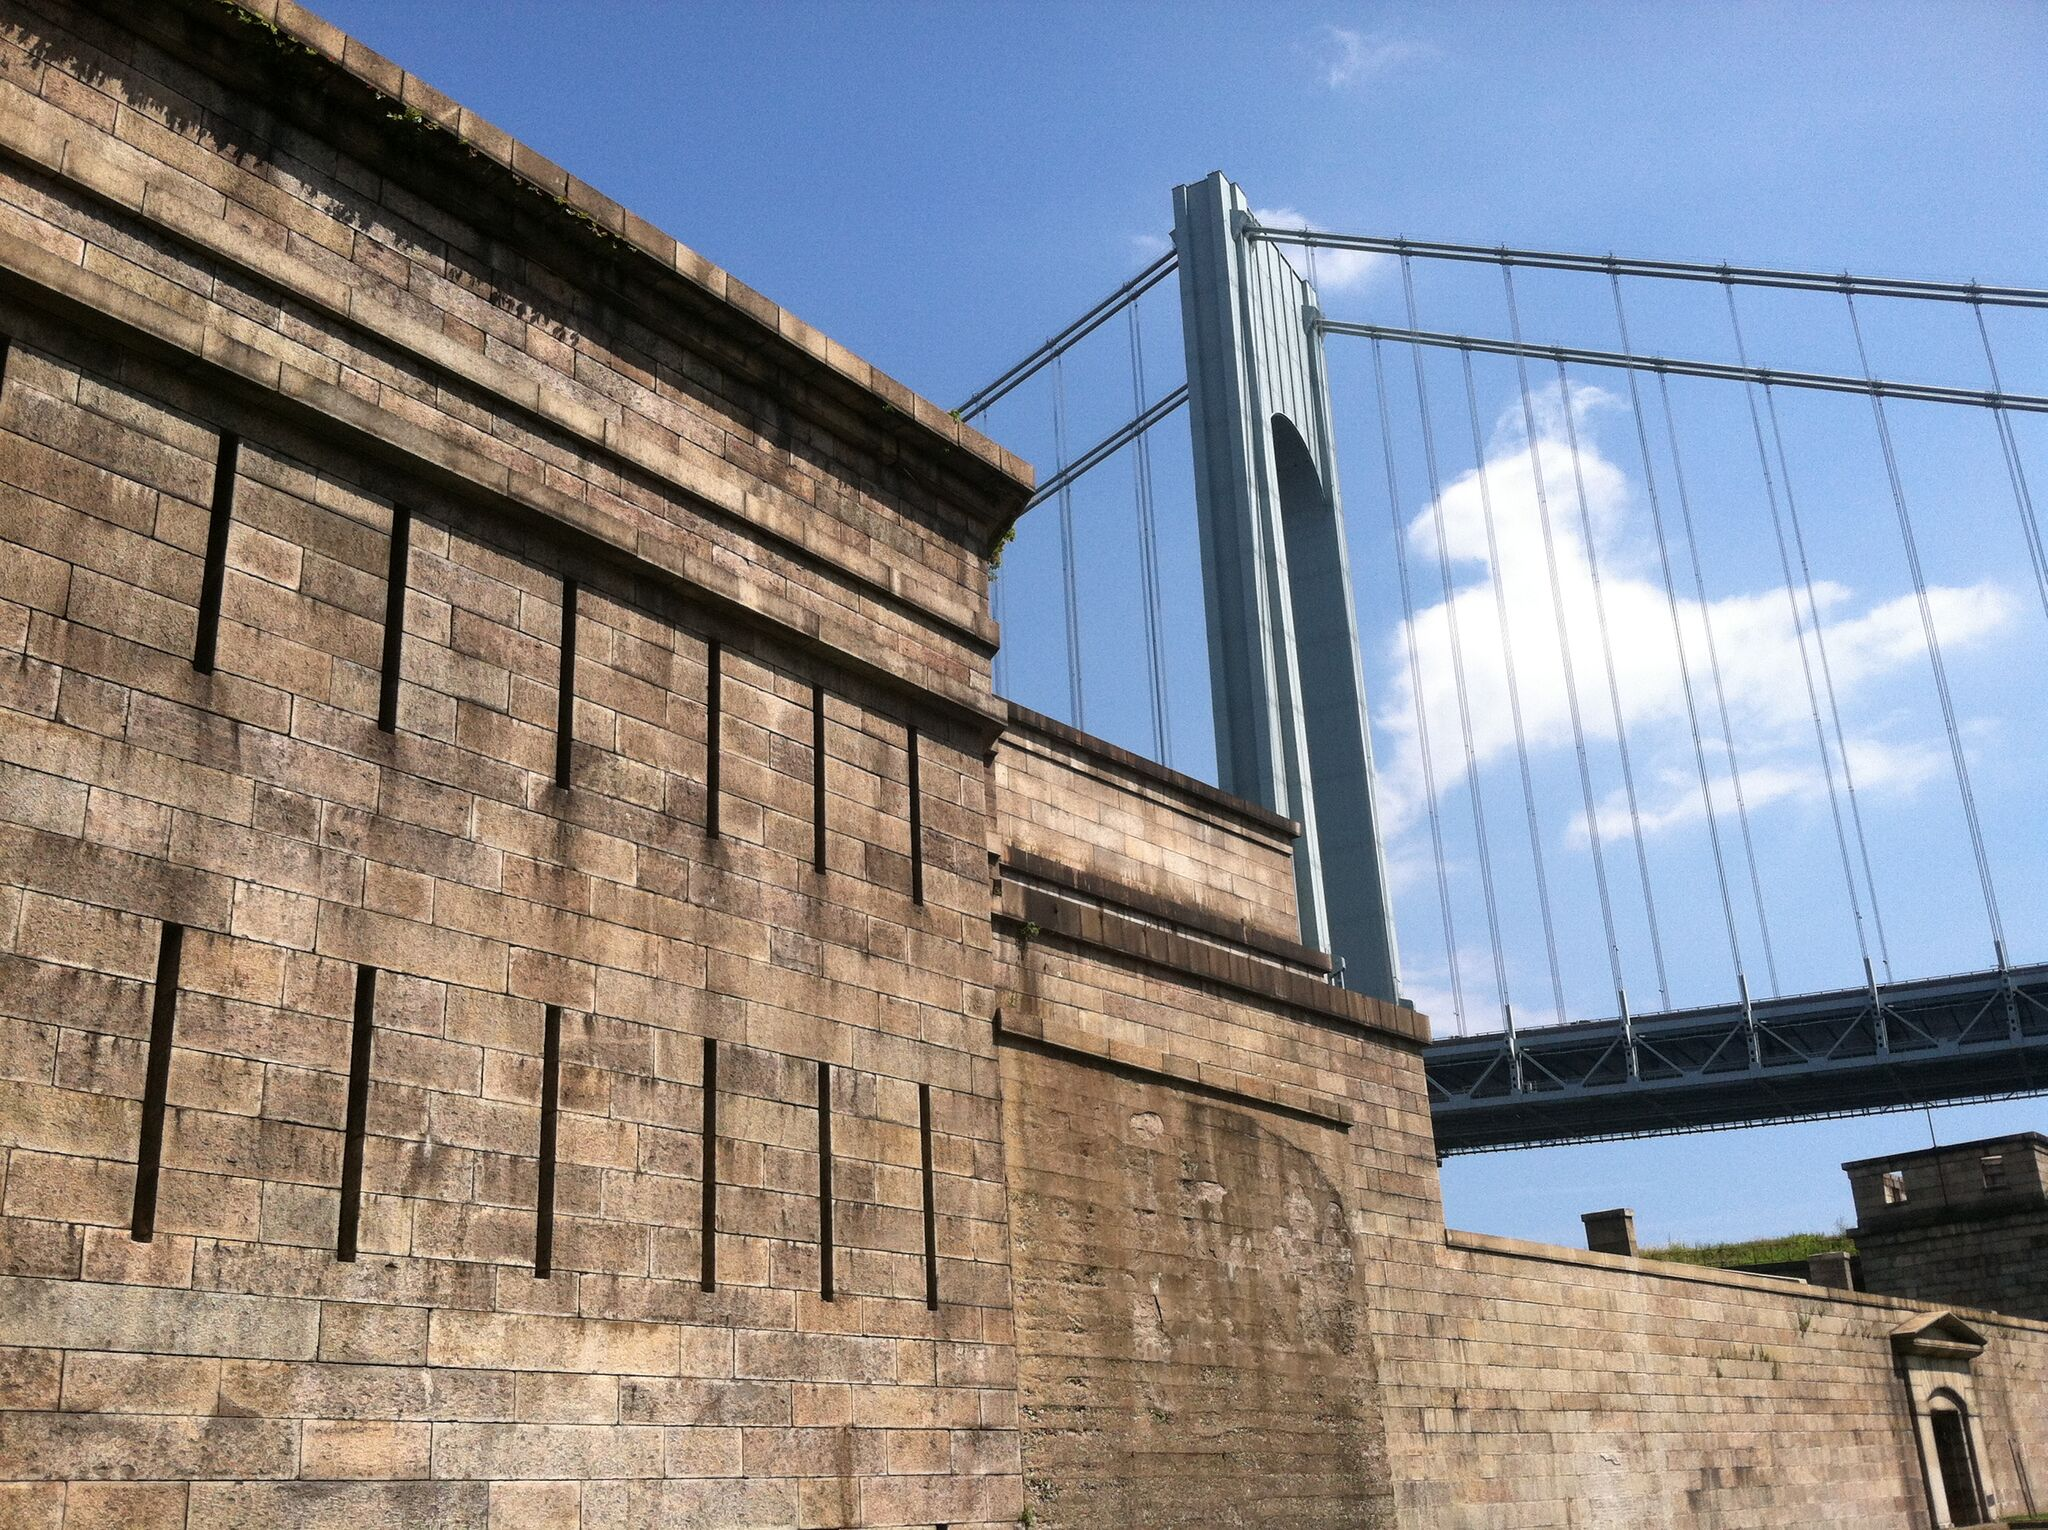 View from Fort Wadsworth